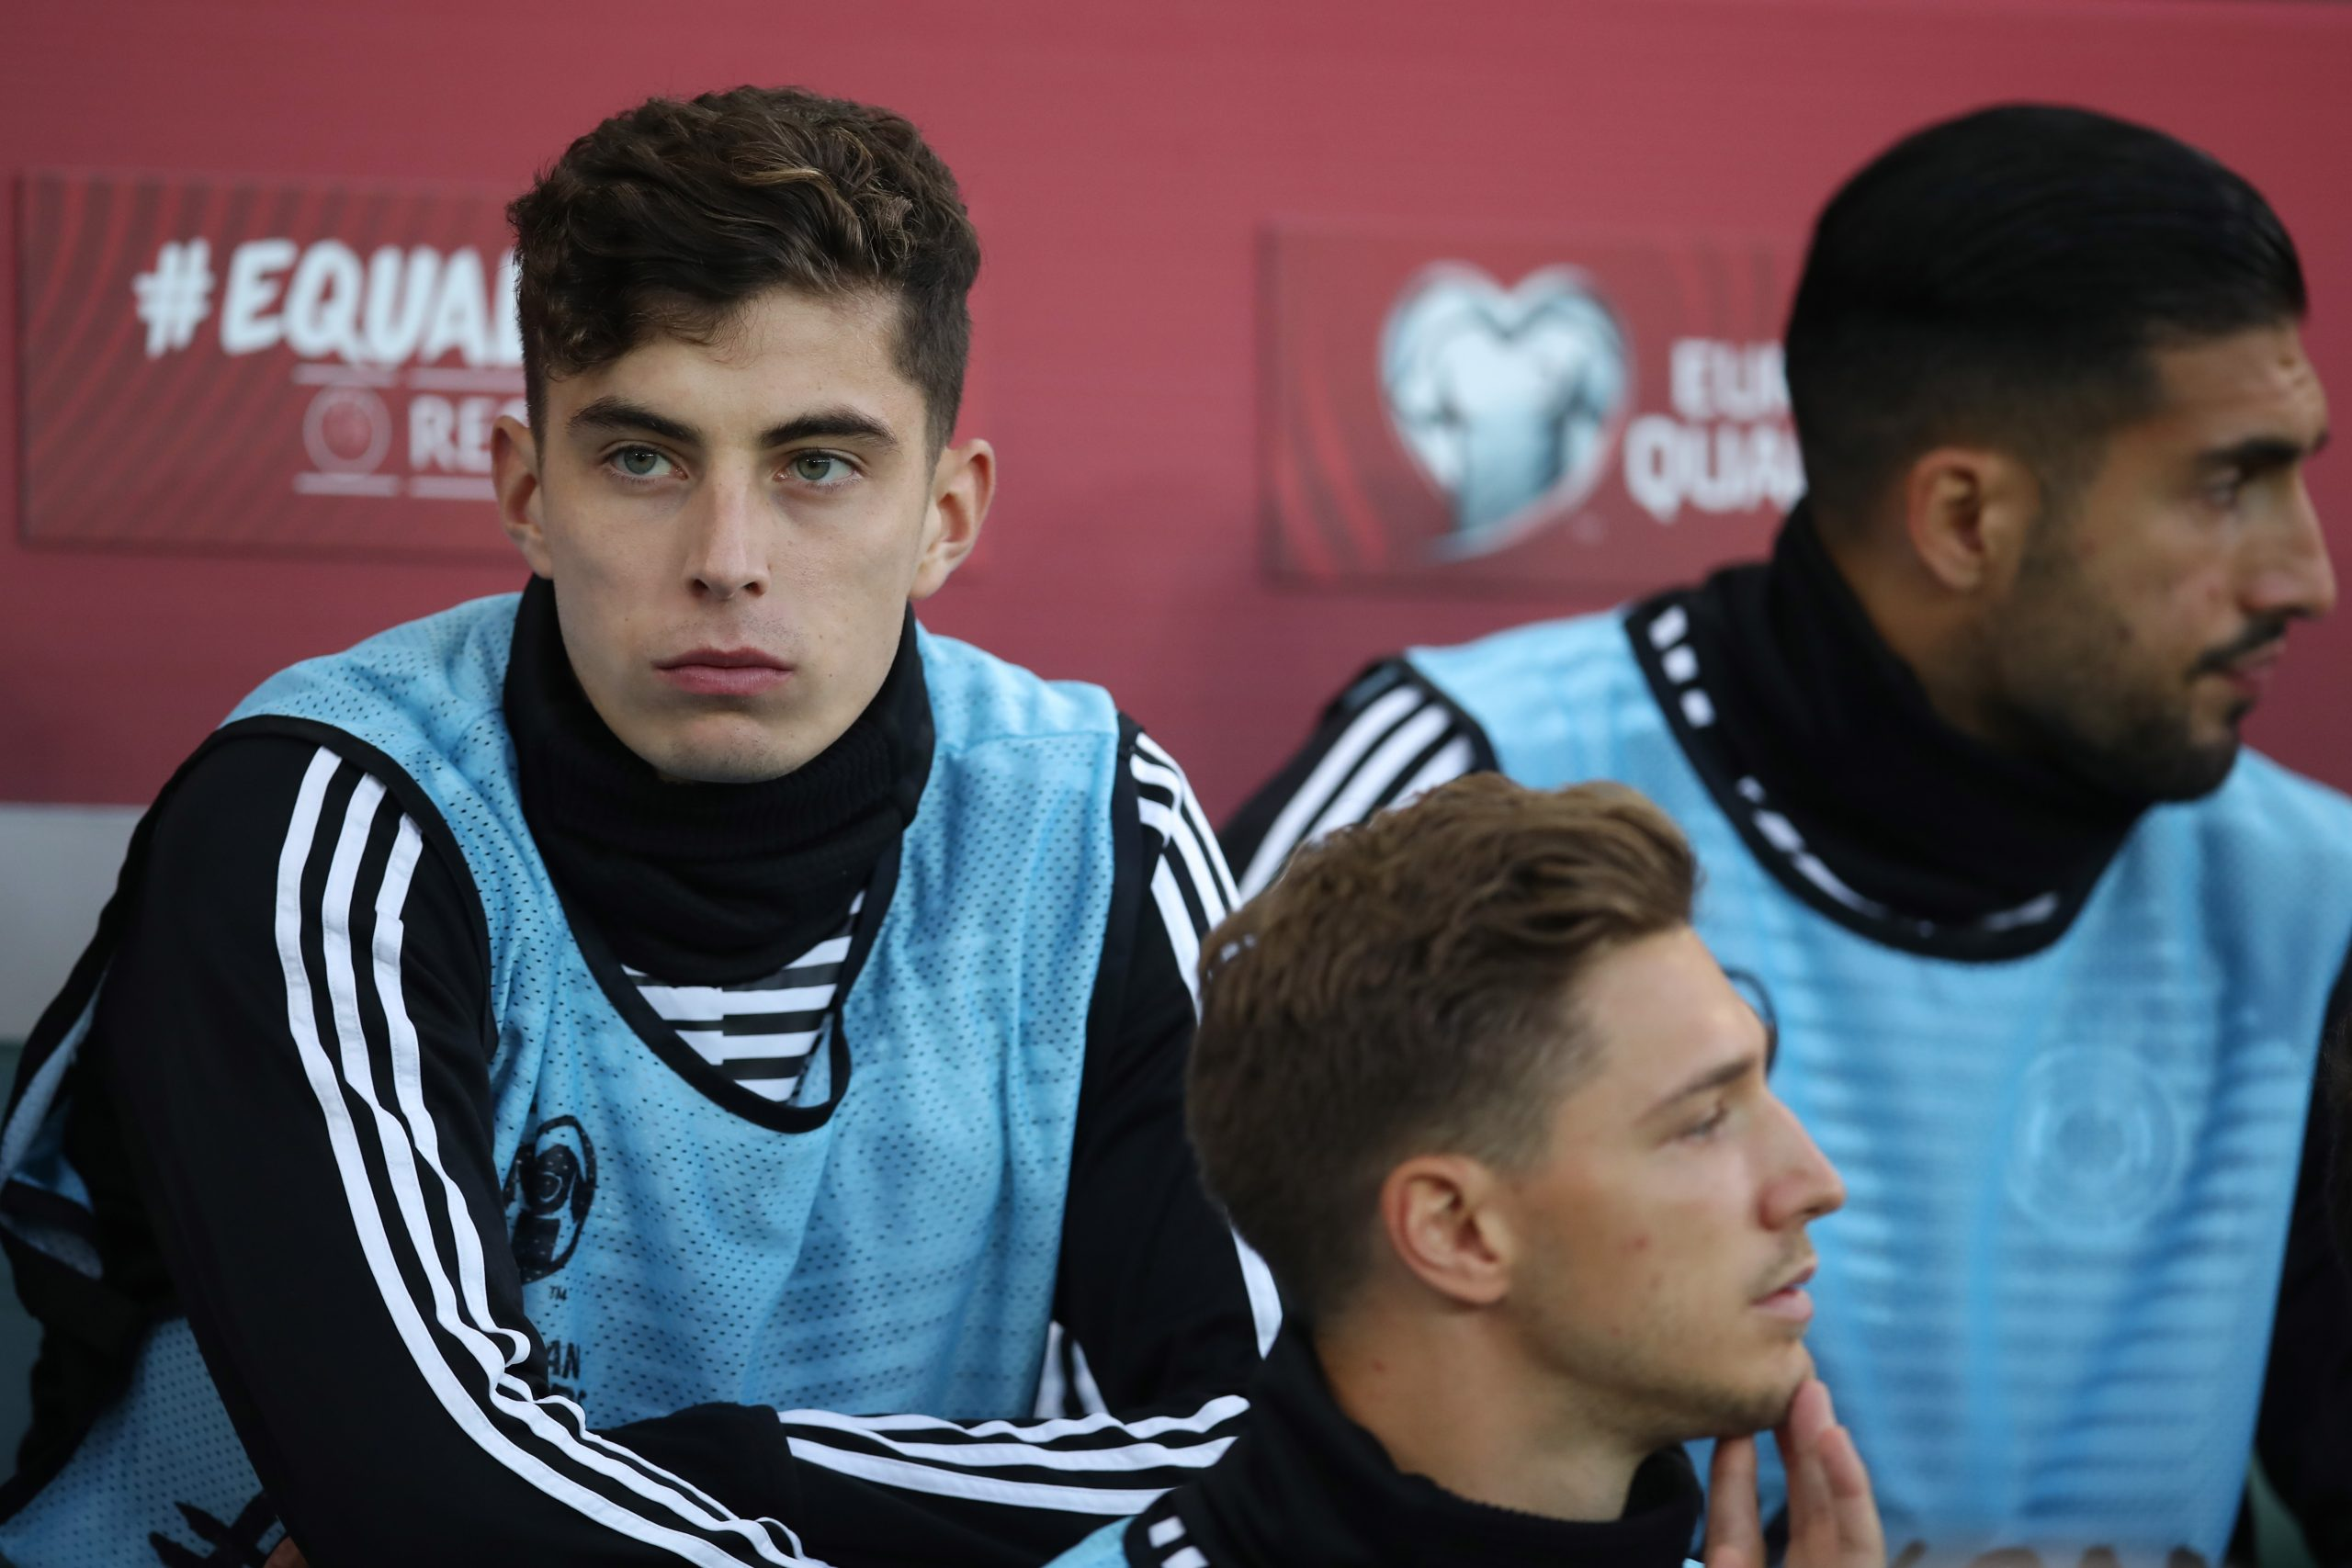 Kai Havertz is available for selection against Spurs, but Paul Merson believes Lampard should not start him. (GETTY Images)